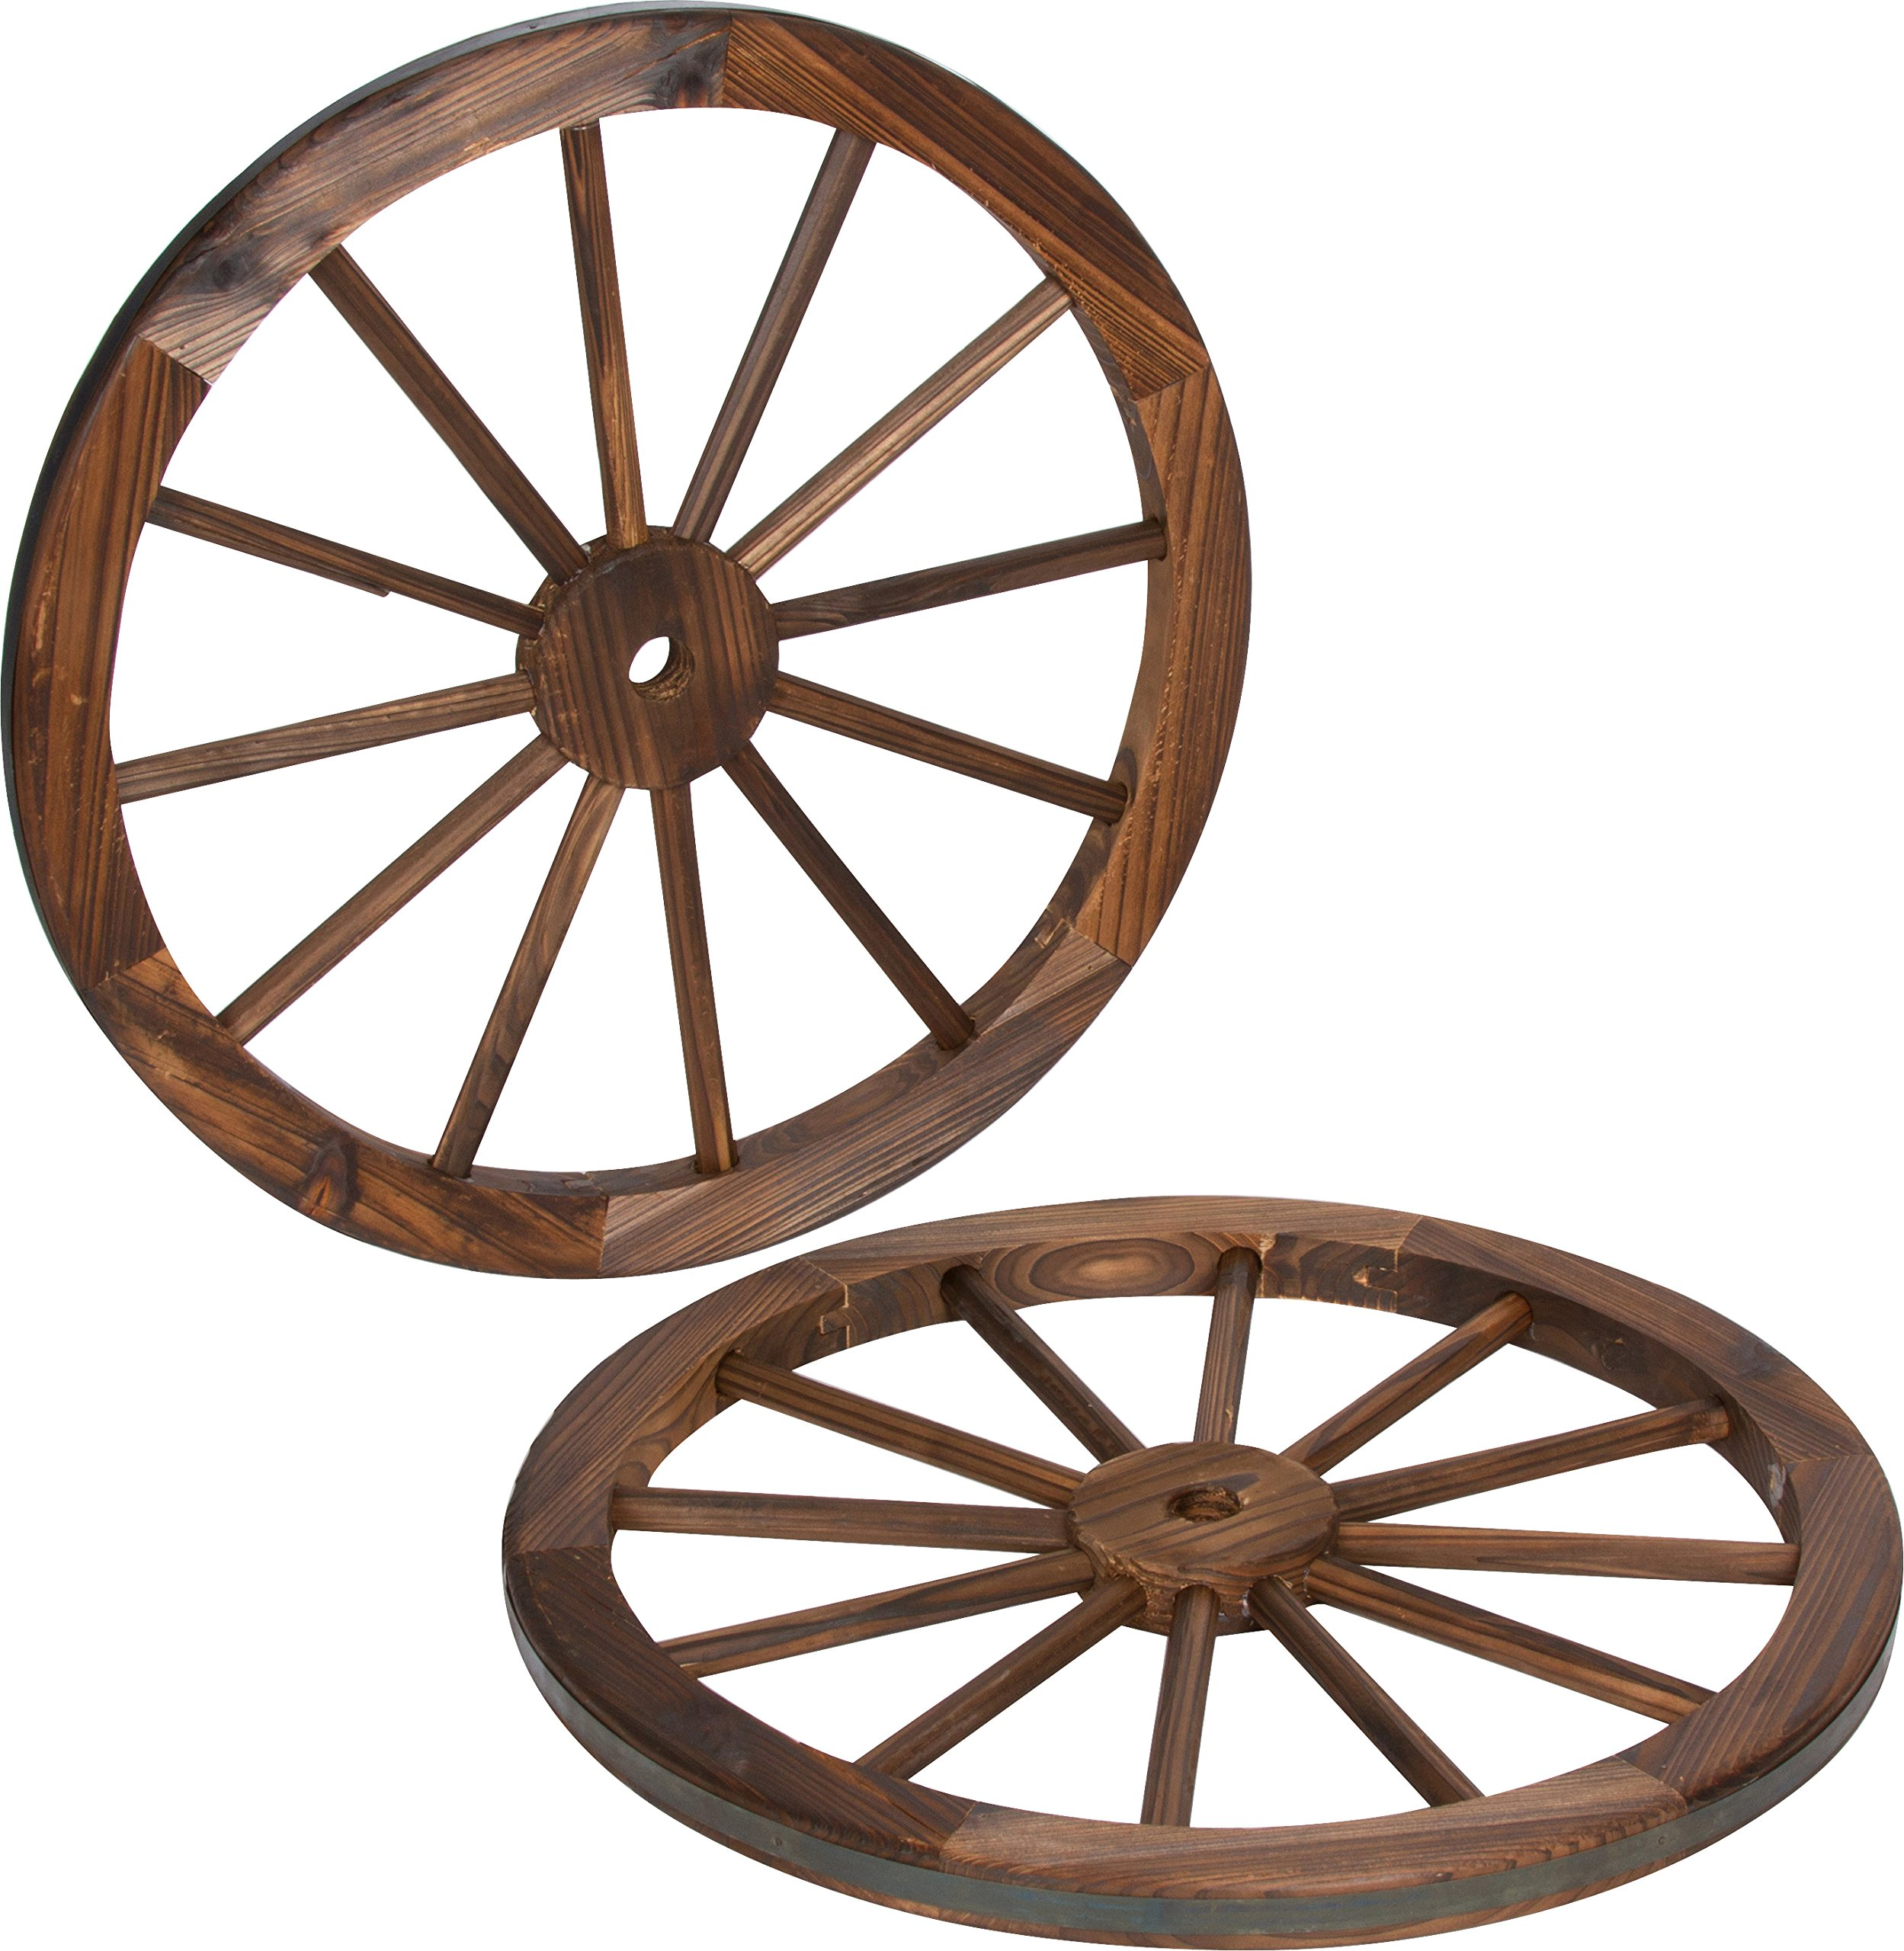 Trademark Innovations Decorative Vintage Wood Garden Wagon Wheel with Steel  Rim-1112 Diameter (Set of 112), 112 Count